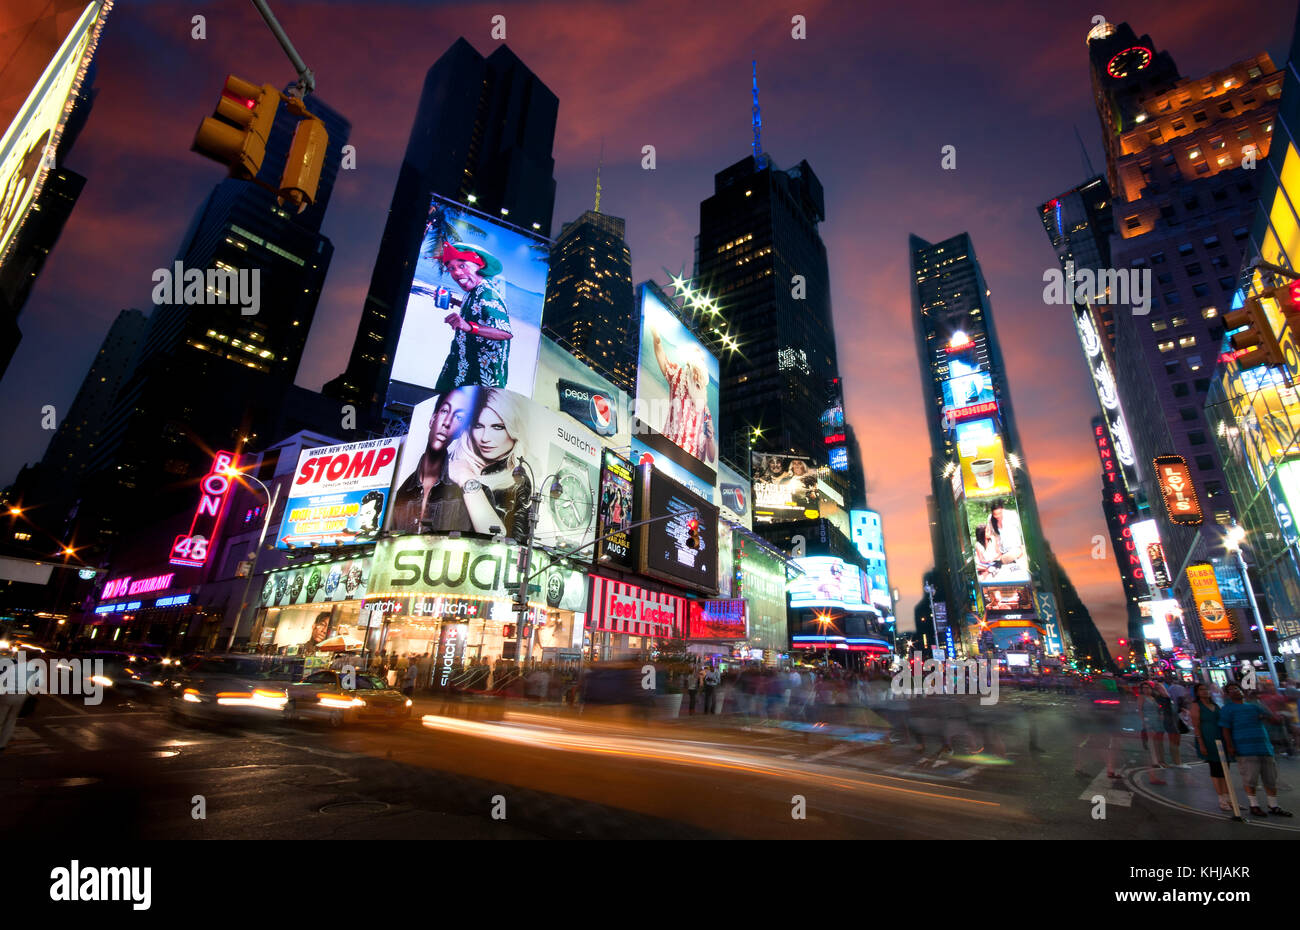 New York, USA, July 10 2011: New York Time Square in the Evening with traffic congestion human crowd and advertising - Stock Image